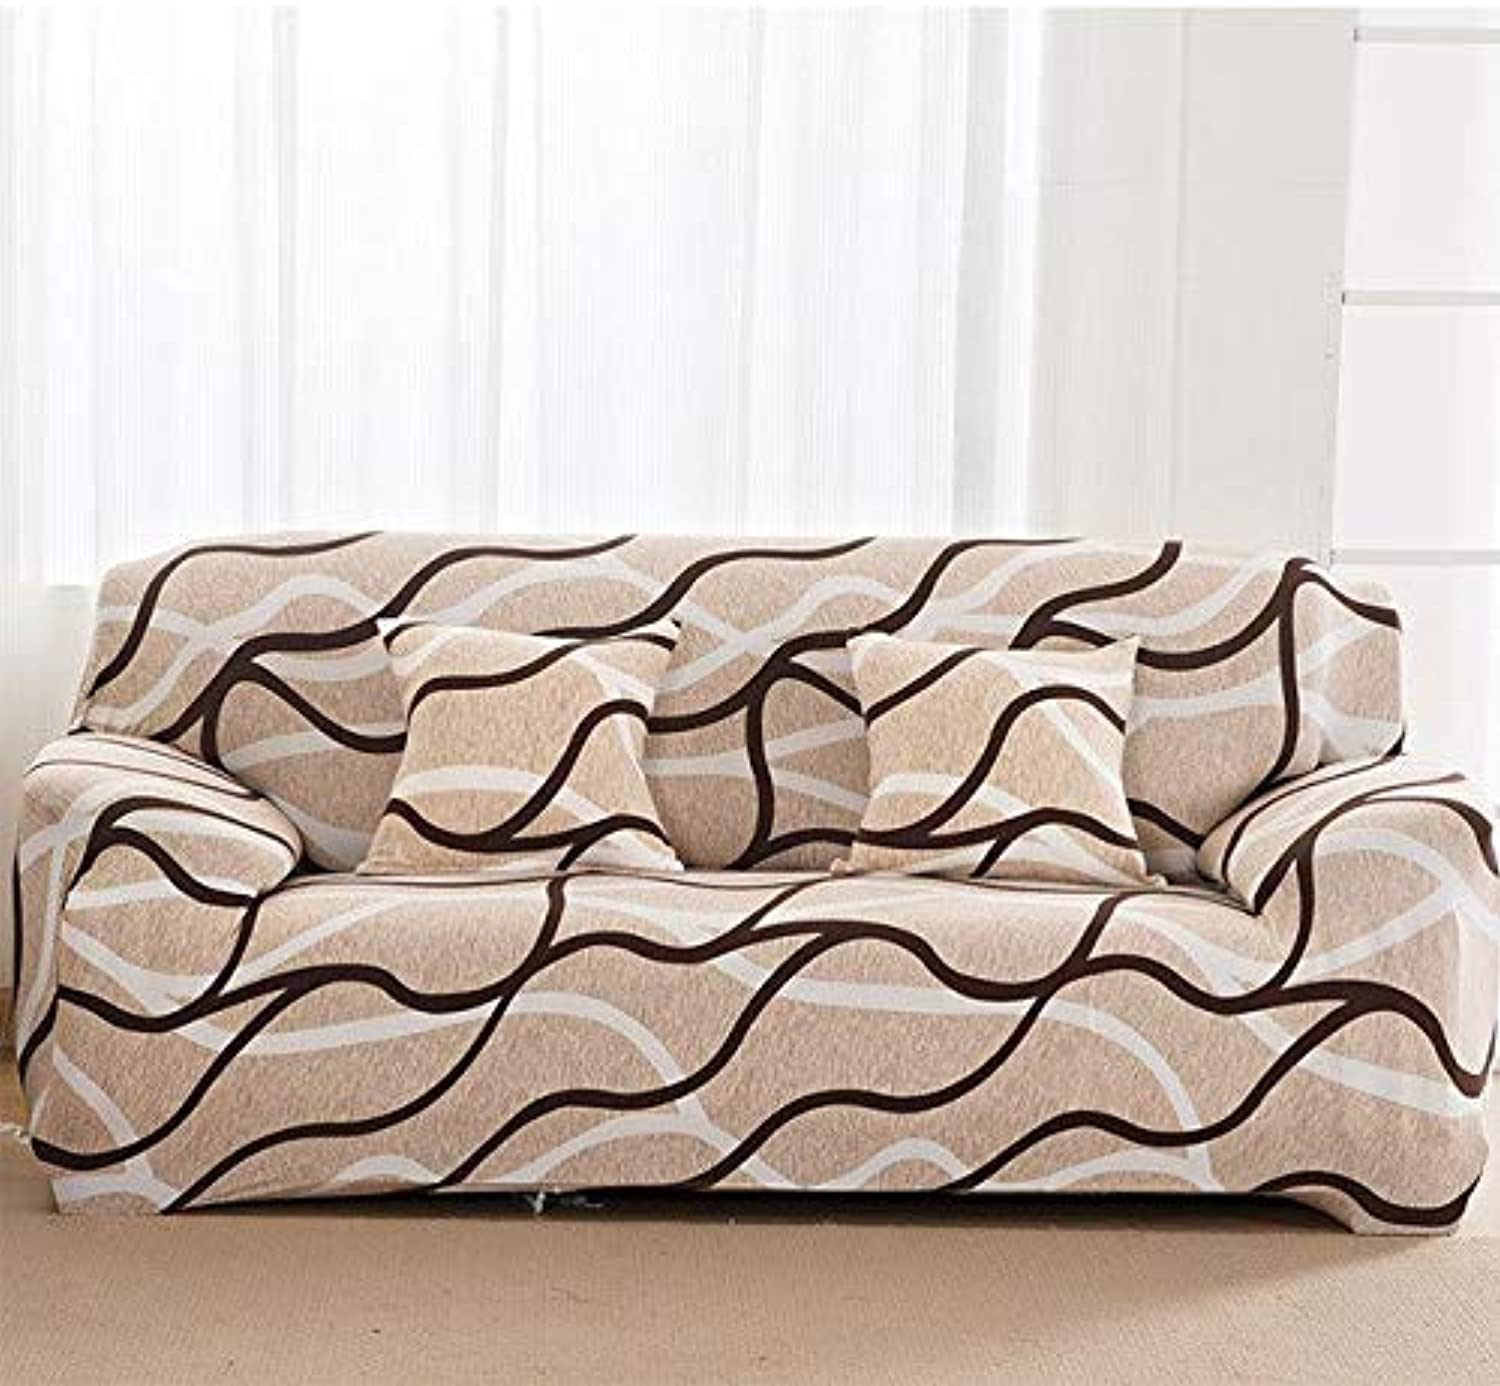 Farmerly 1pcs Deer Christmas Soft Stretch Sofa Cover Home Decor Spandex Furniture Covers Decoration Covering Hotel Slipcover 58121   T, Four seat